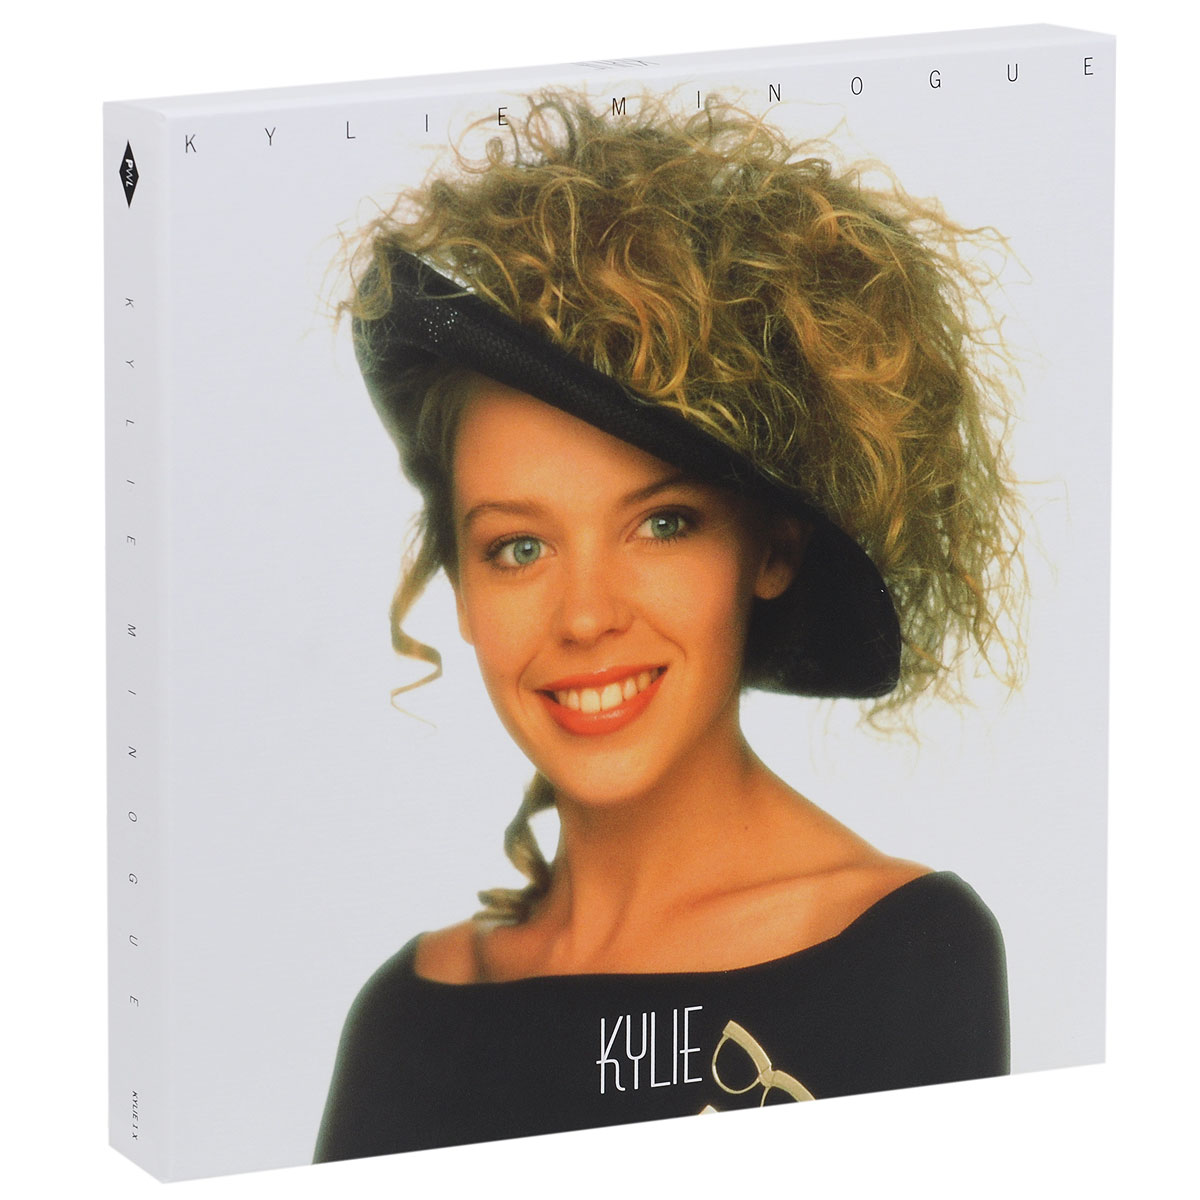 Кайли Миноуг Kylie Minogue. Kylie (2 CD + DVD + LP) pantera pantera reinventing hell the best of pantera cd dvd